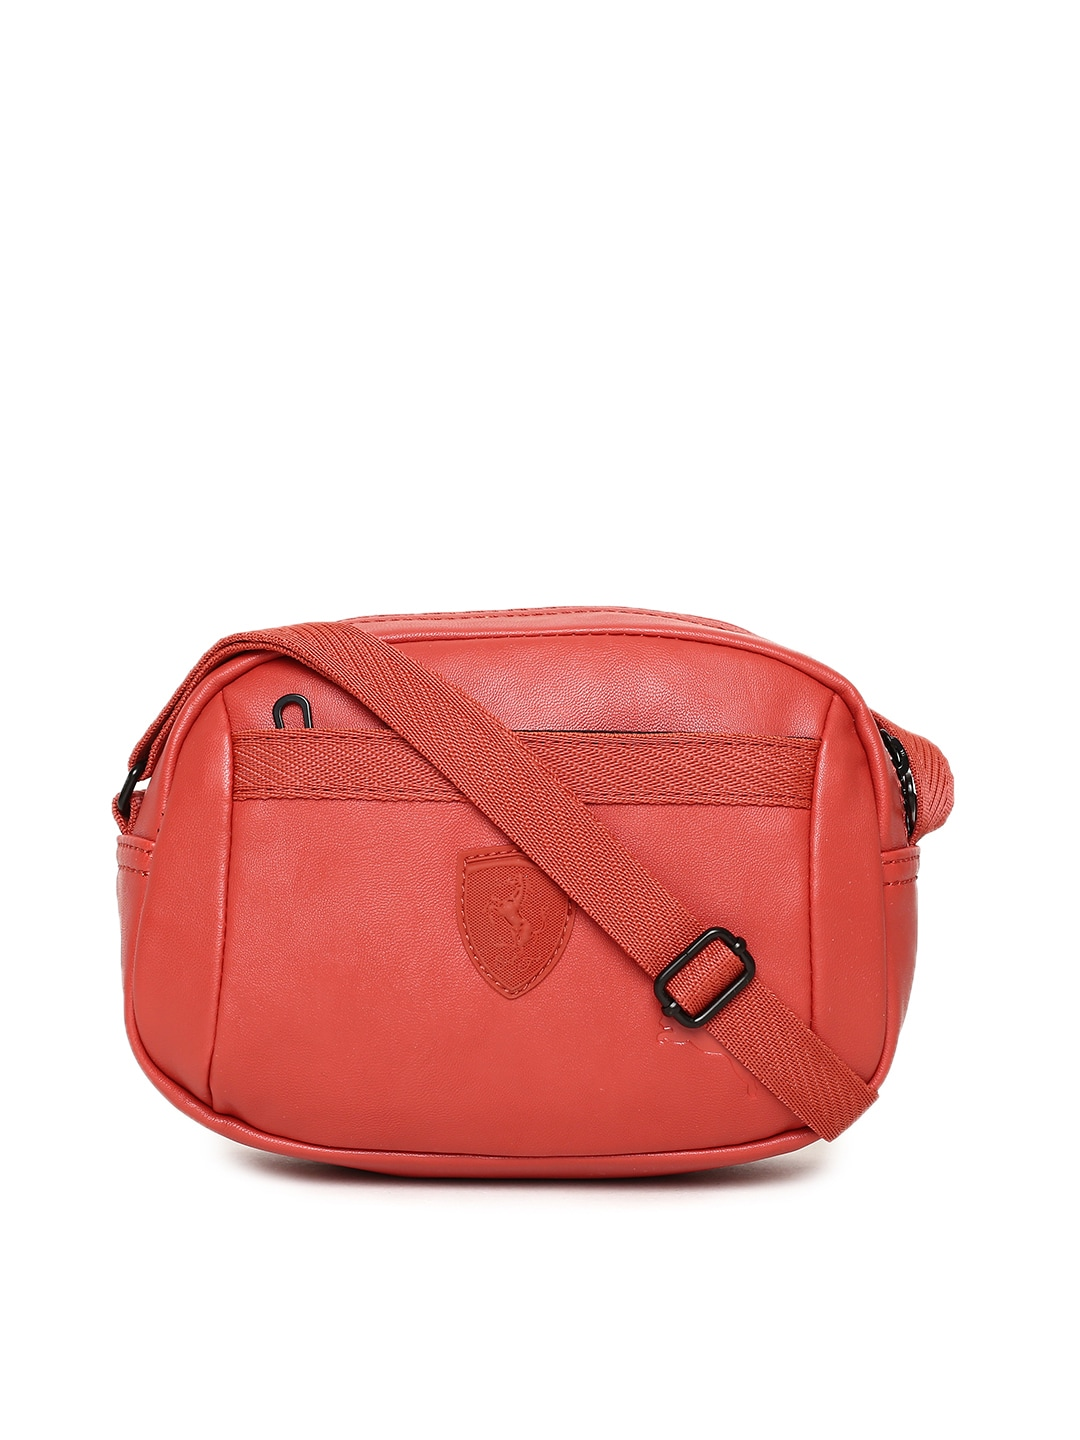 Puma Ferrari Sling Handbags - Buy Puma Ferrari Sling Handbags online in  India 0499748c905eb